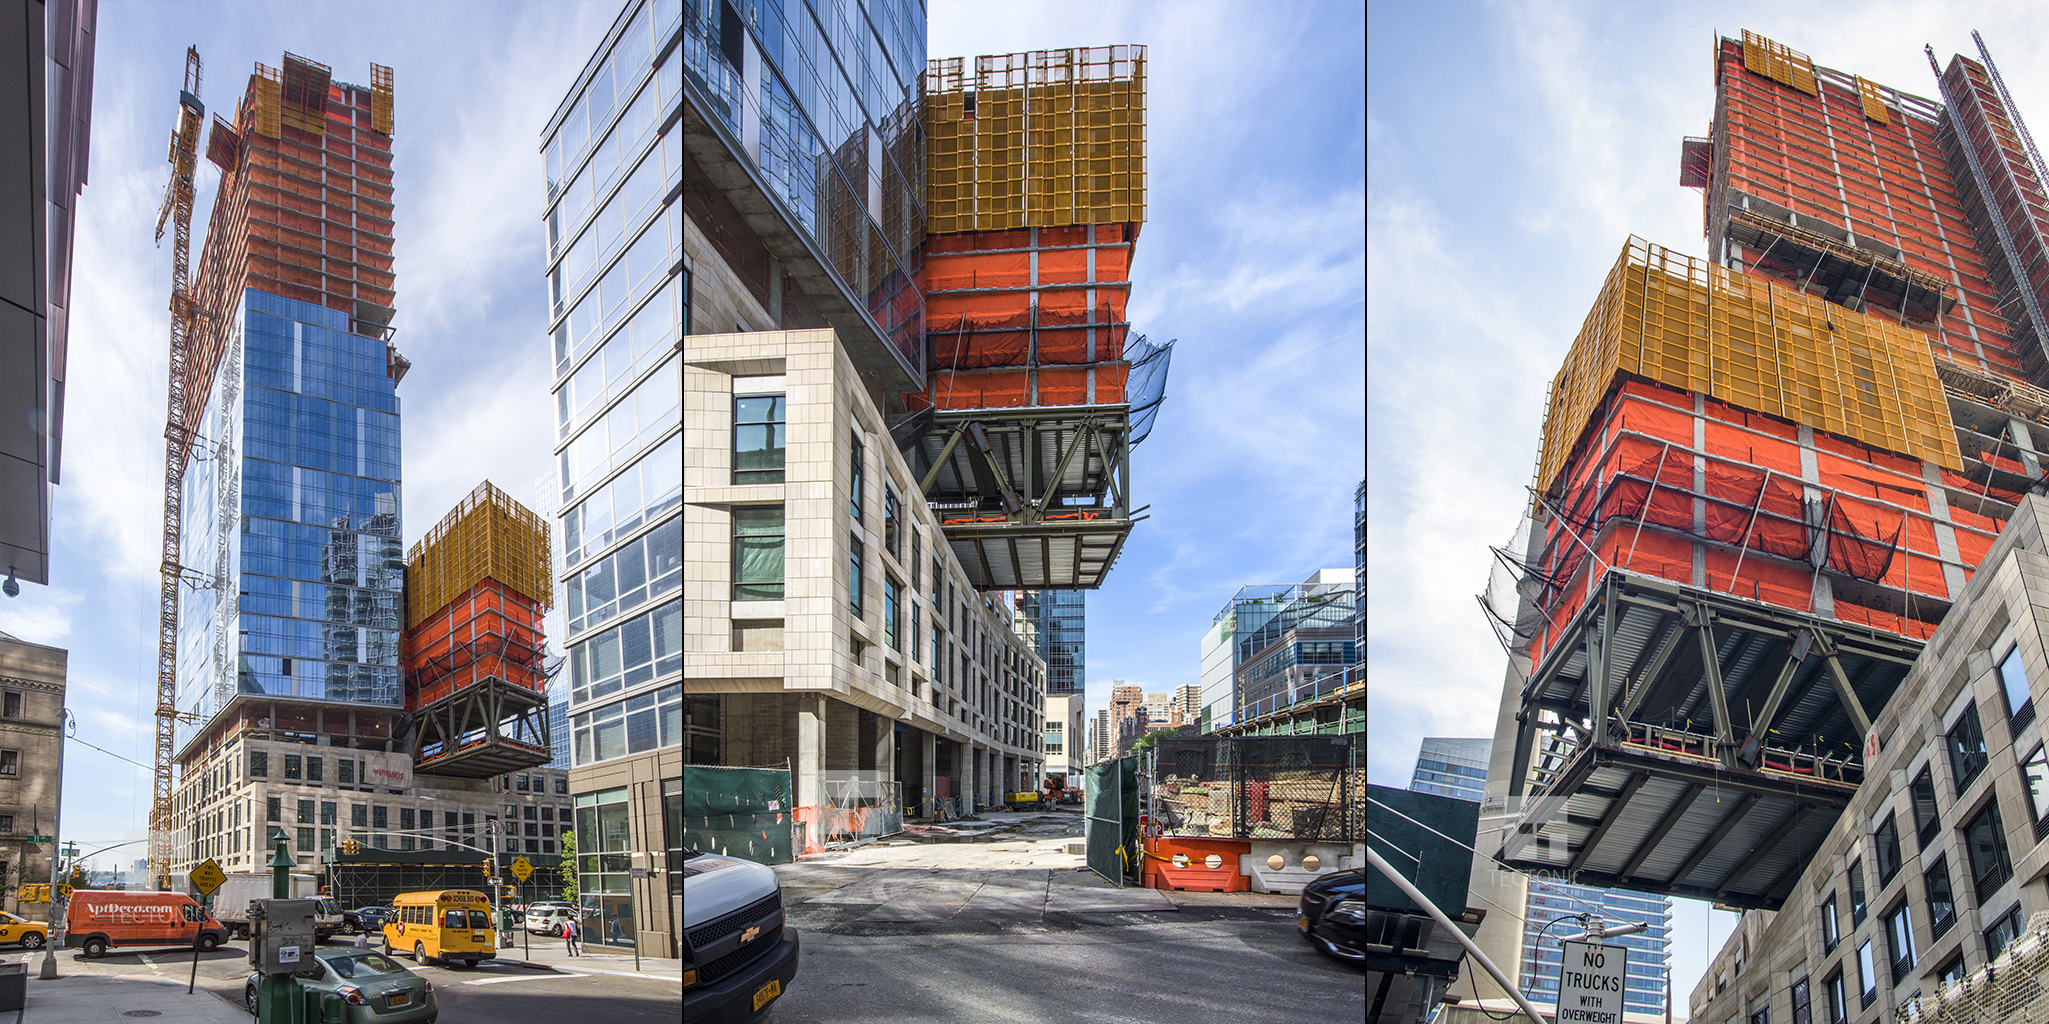 Construction of One West End, at 1 West End Avenue. Photos by Tectonic